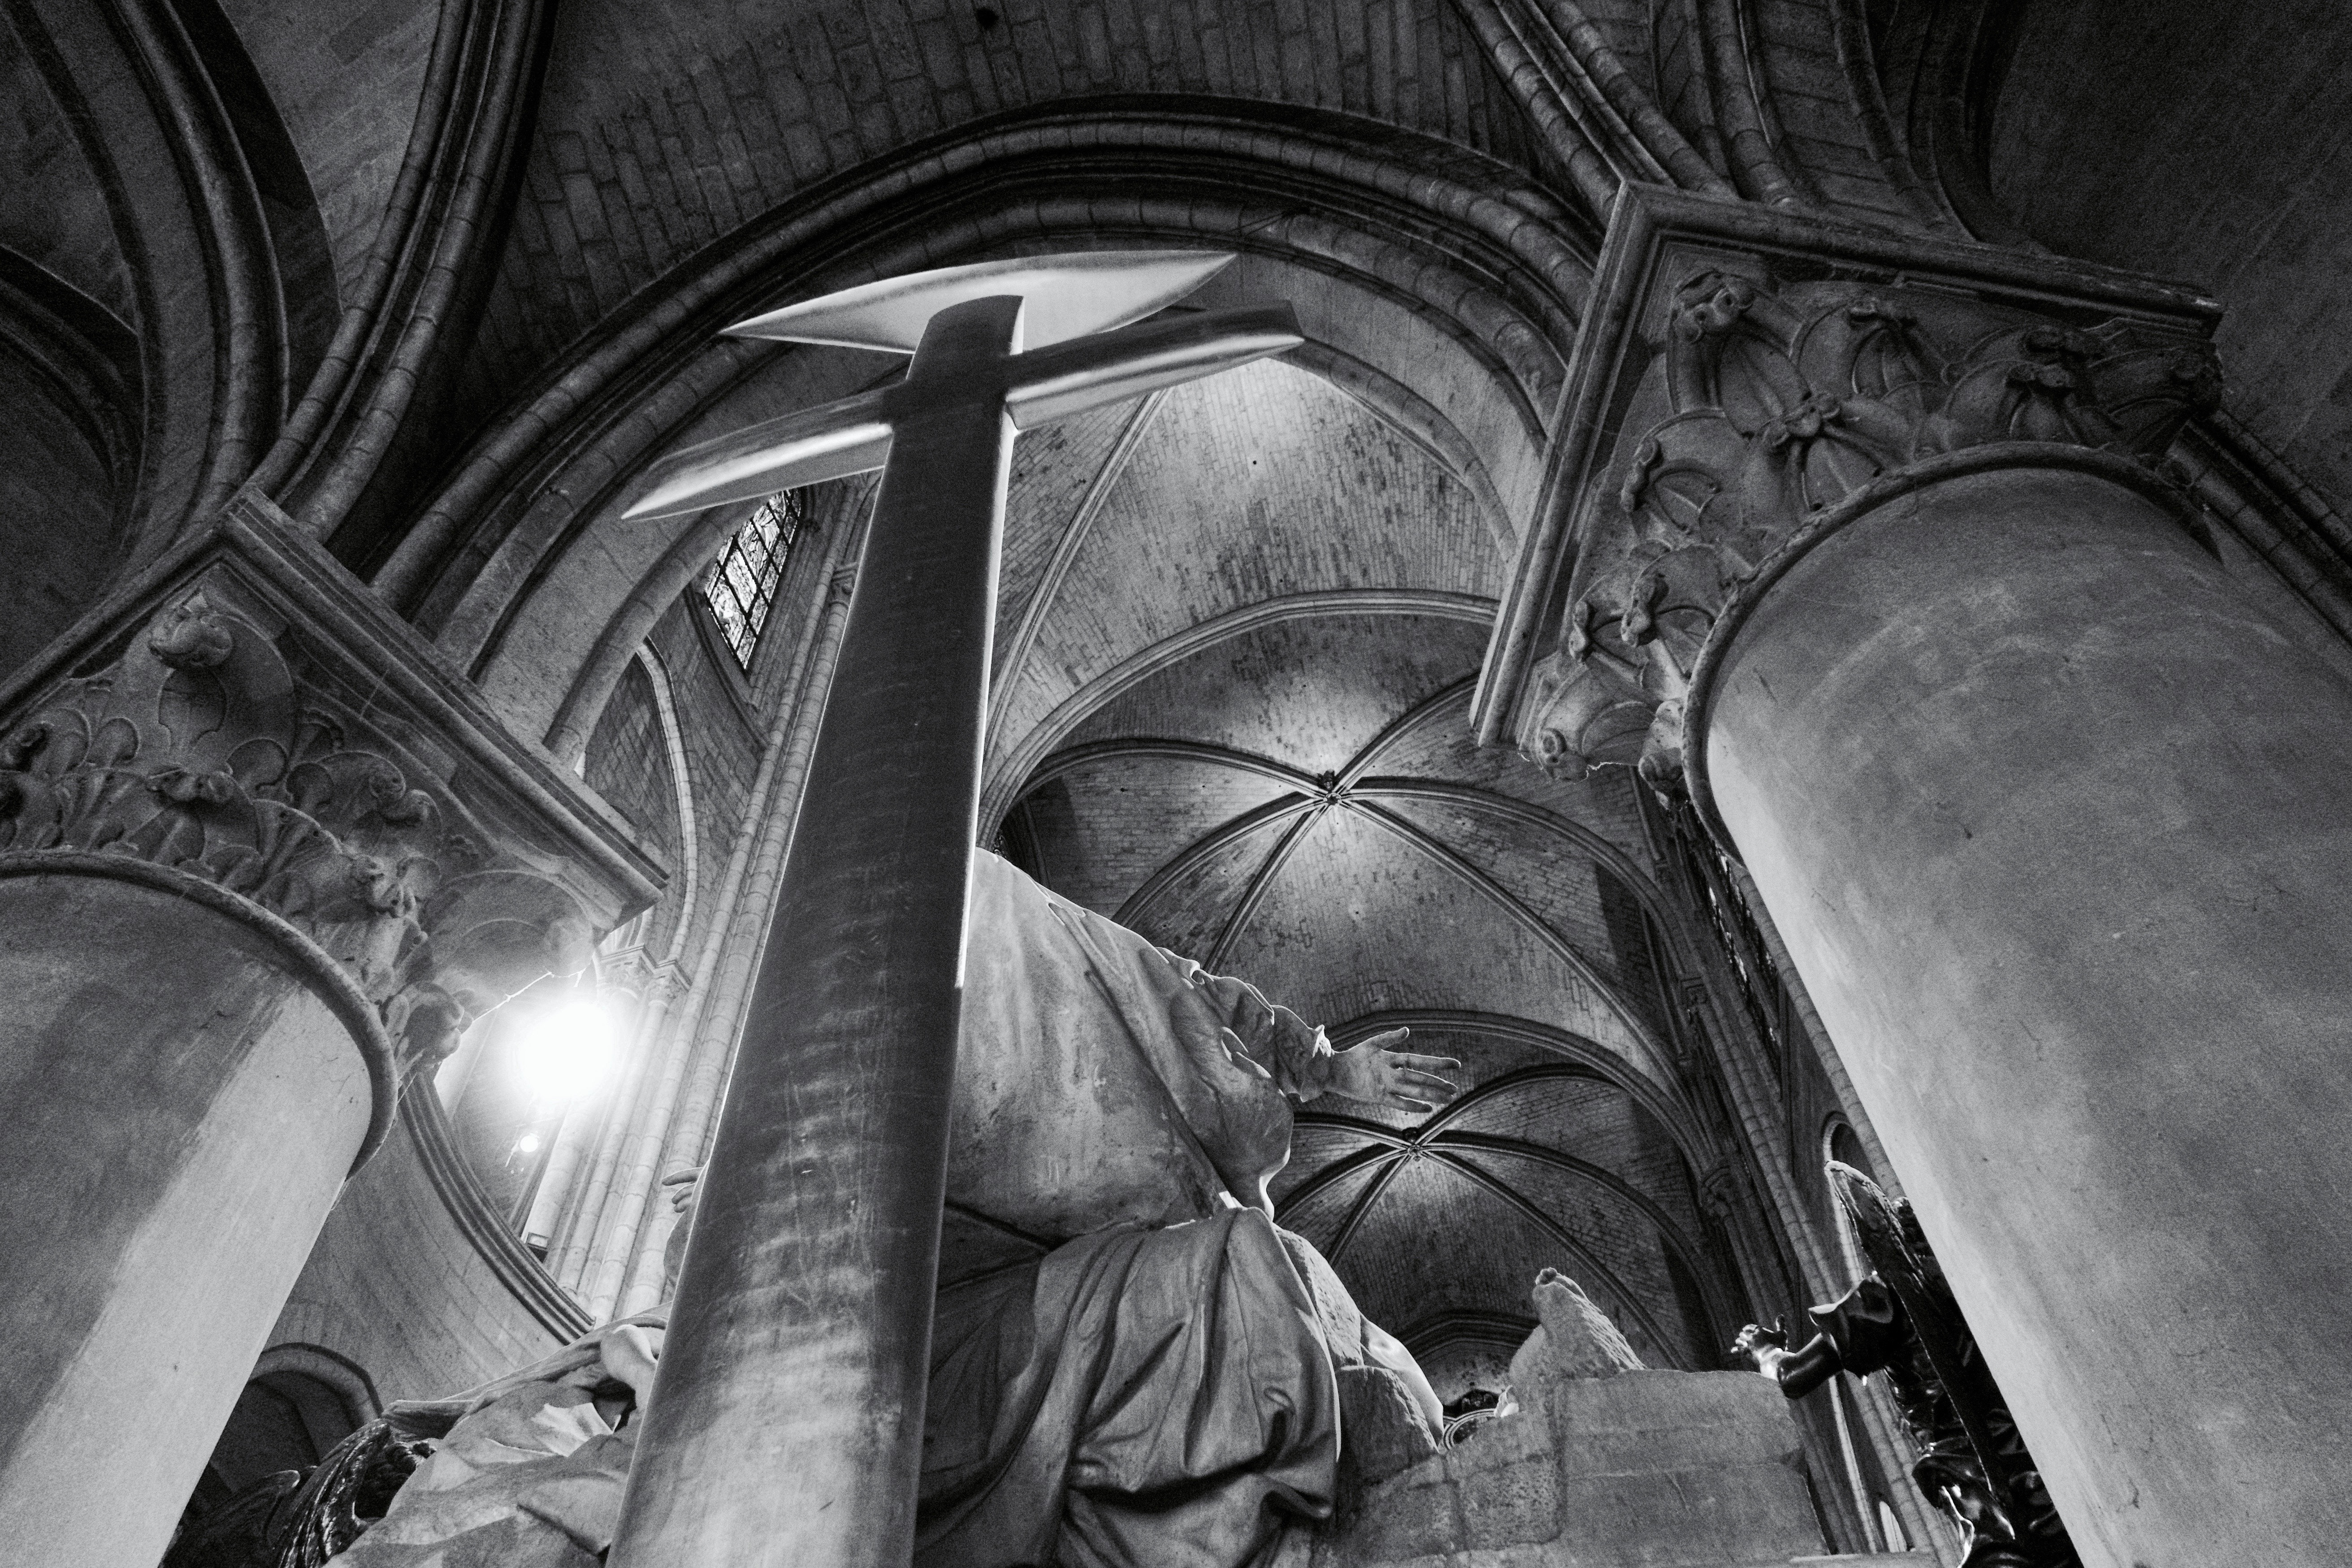 Notre-Dame Nave